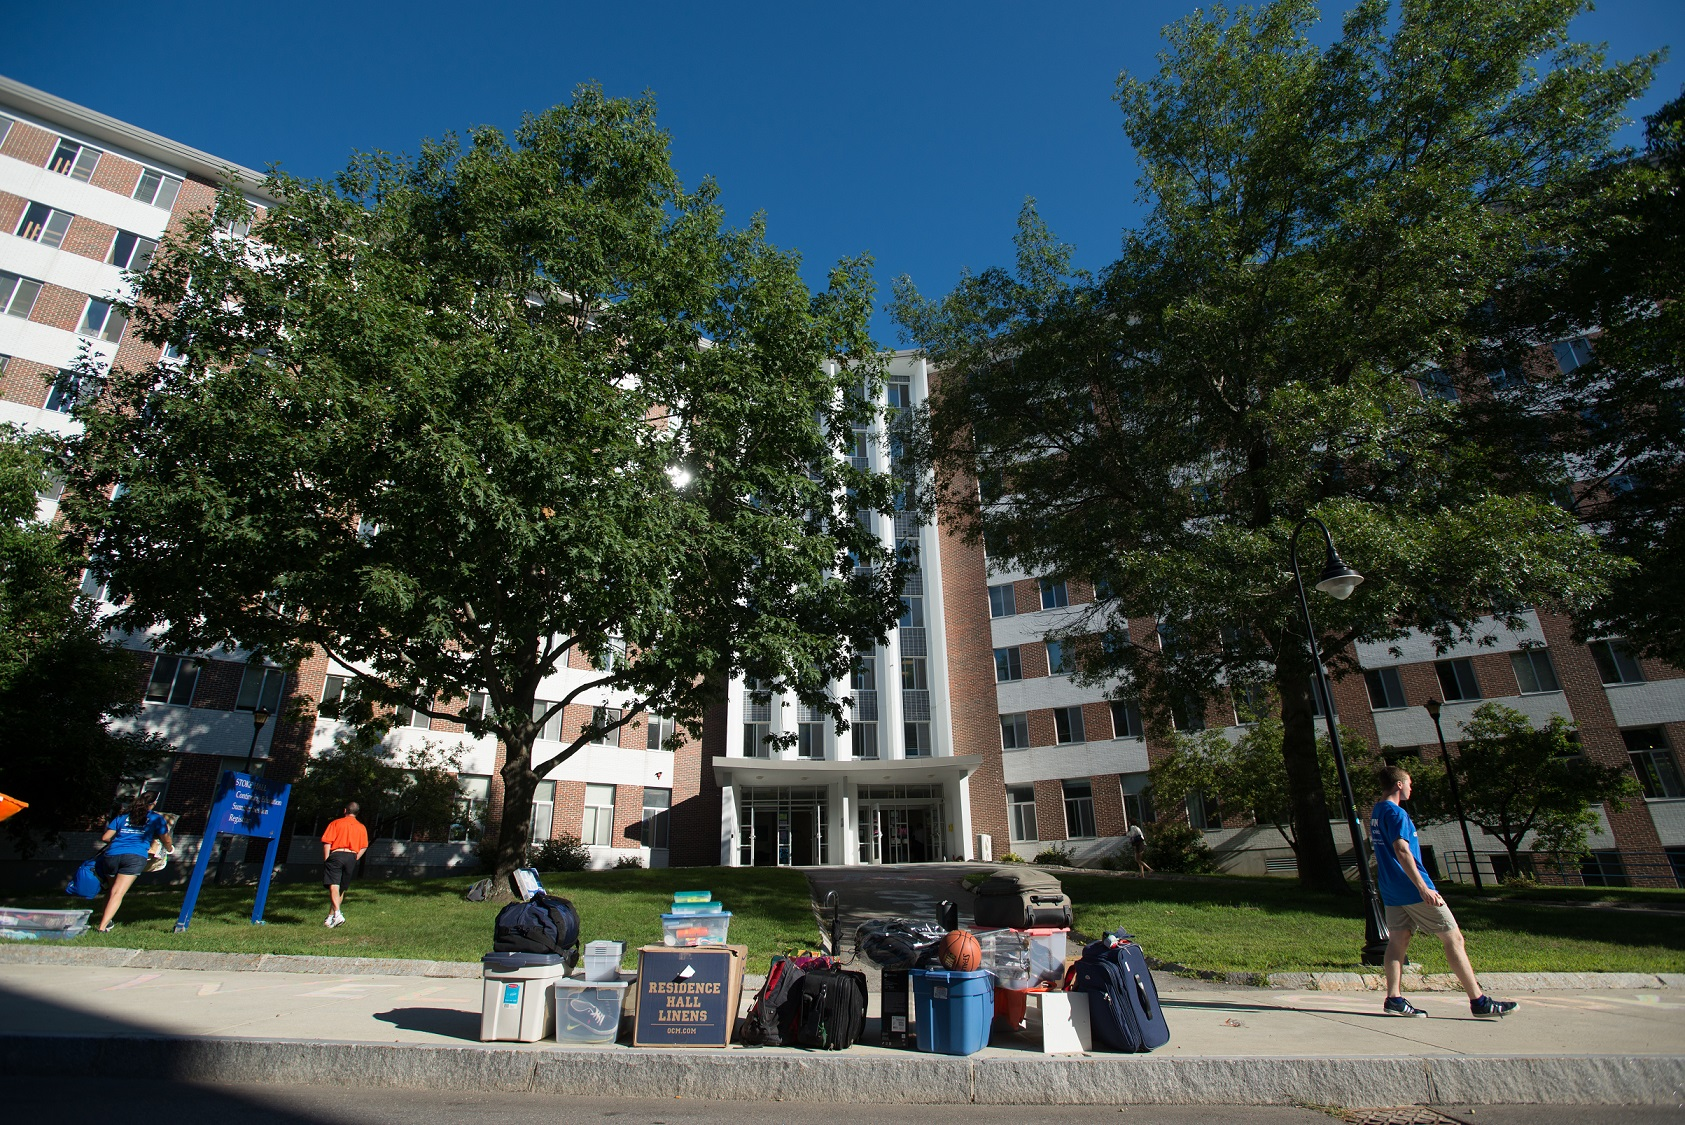 Image of move-in day at Stoke Hall